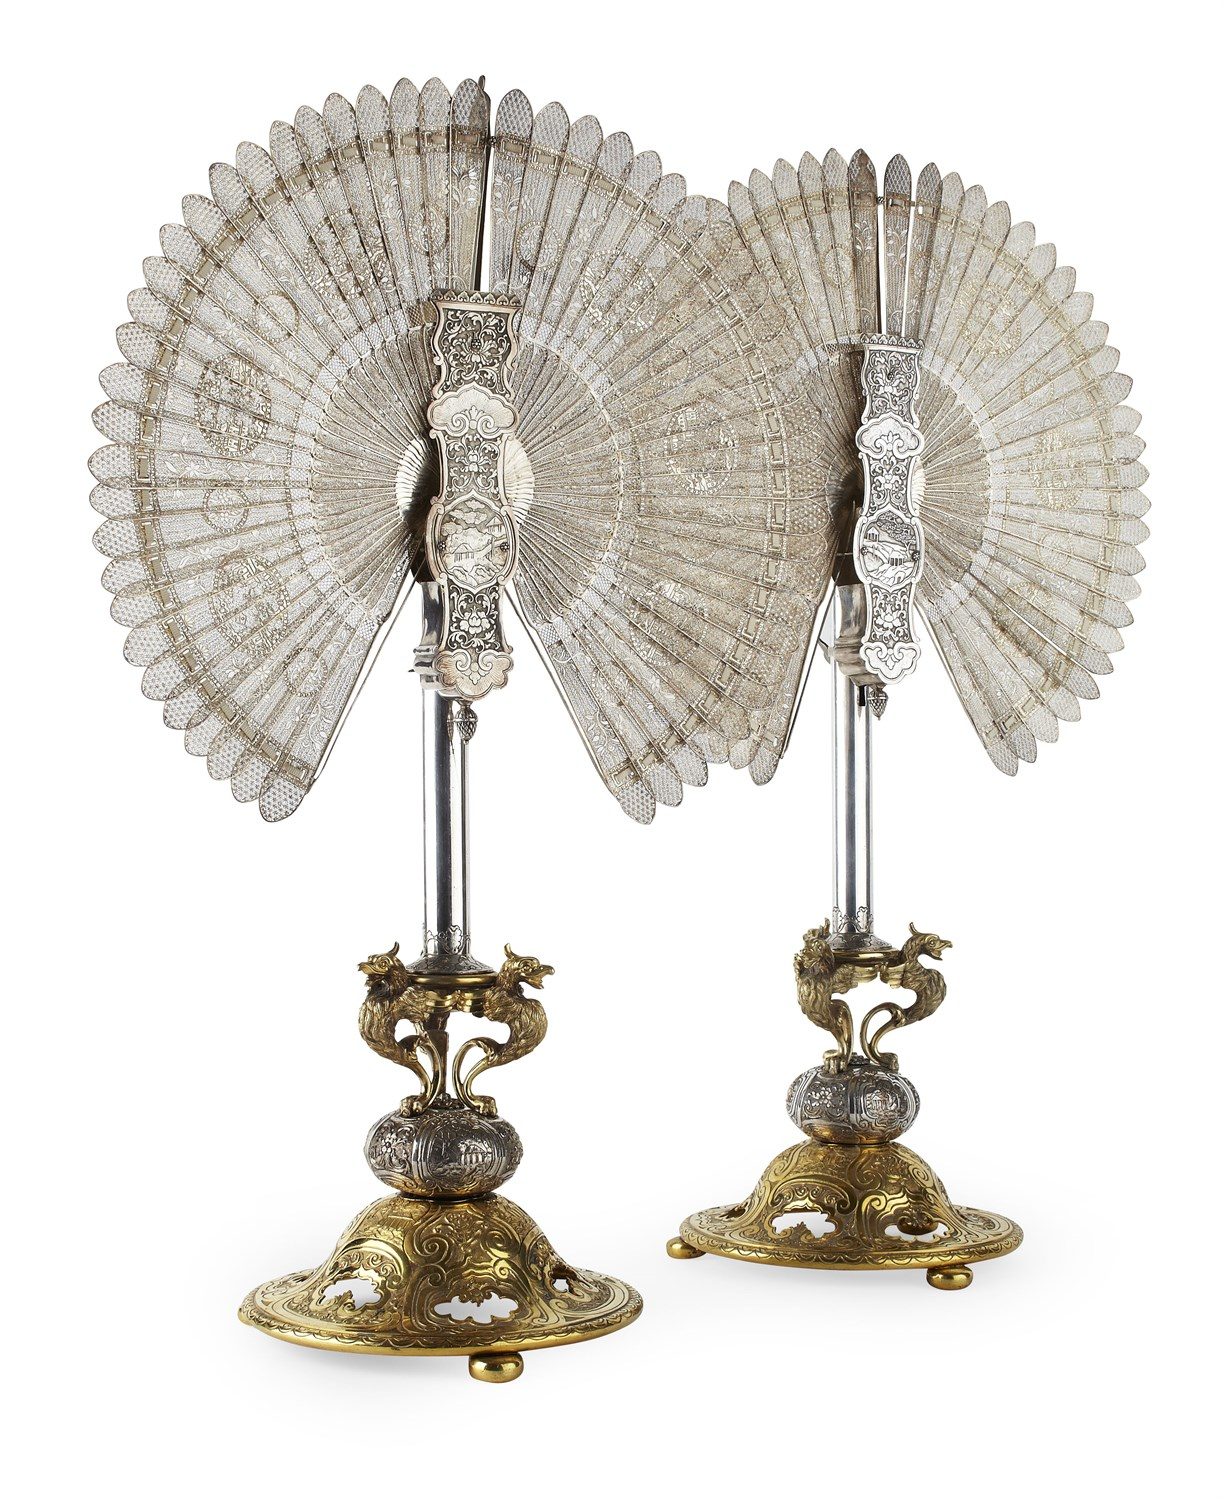 32 - FINE PAIR OF CHINESE SILVER FILIGREE FANS, WITH EUROPEAN SILVERED AND GILT BRONZE STANDS